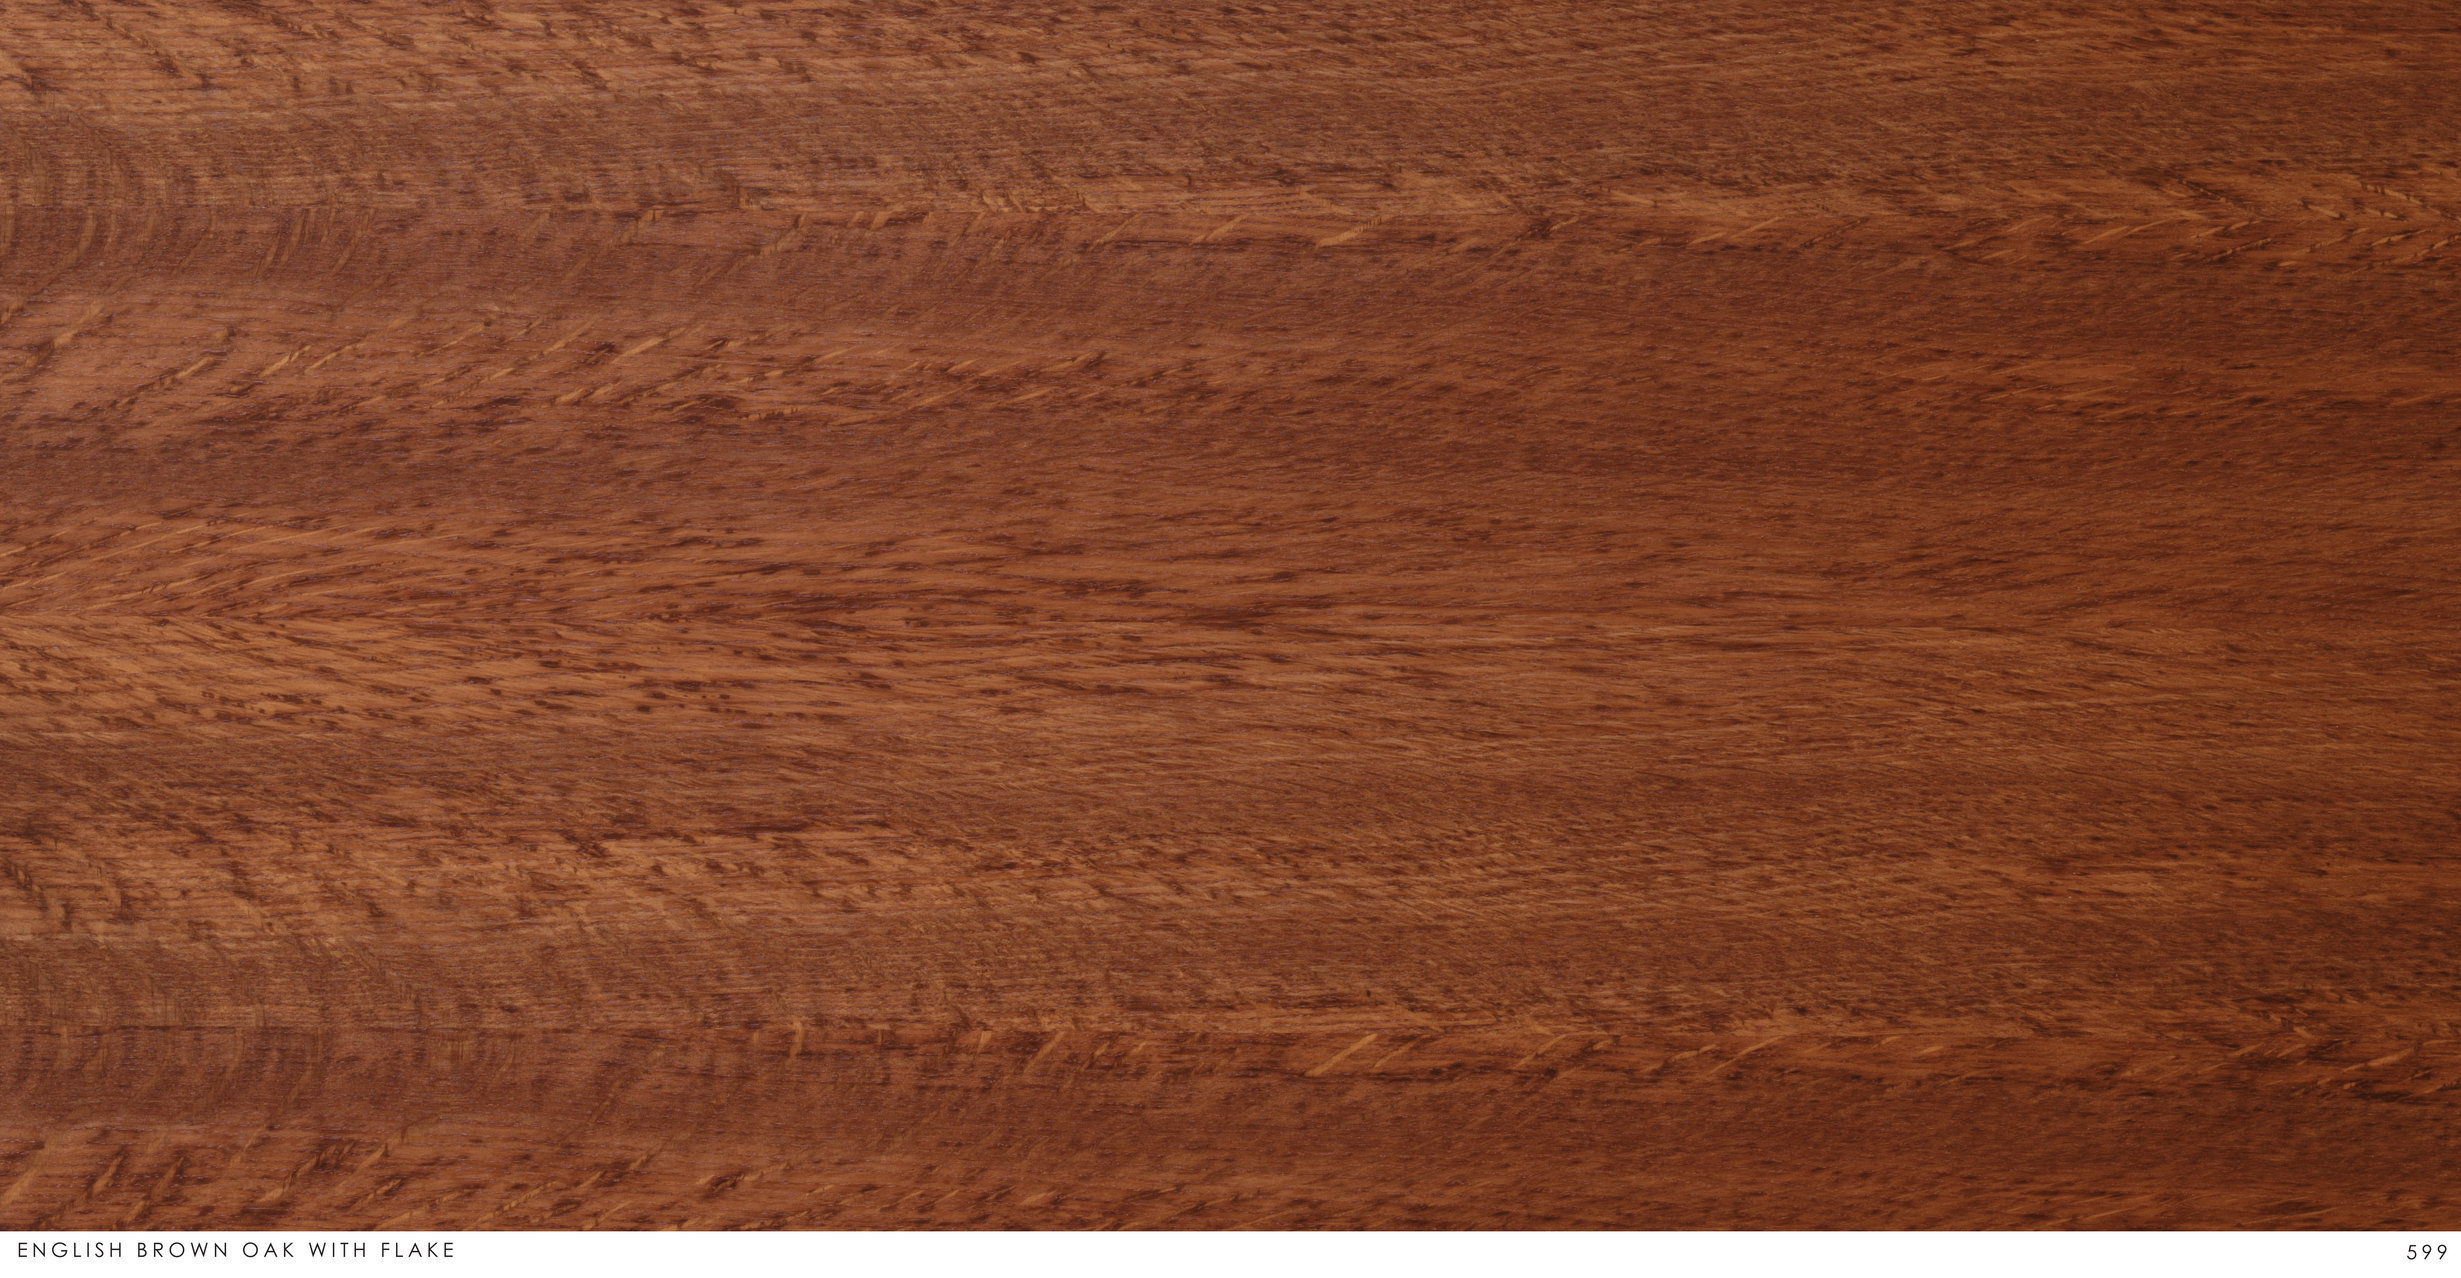 ENGLISH BROWN OAK WITH FLAKE 599.jpg